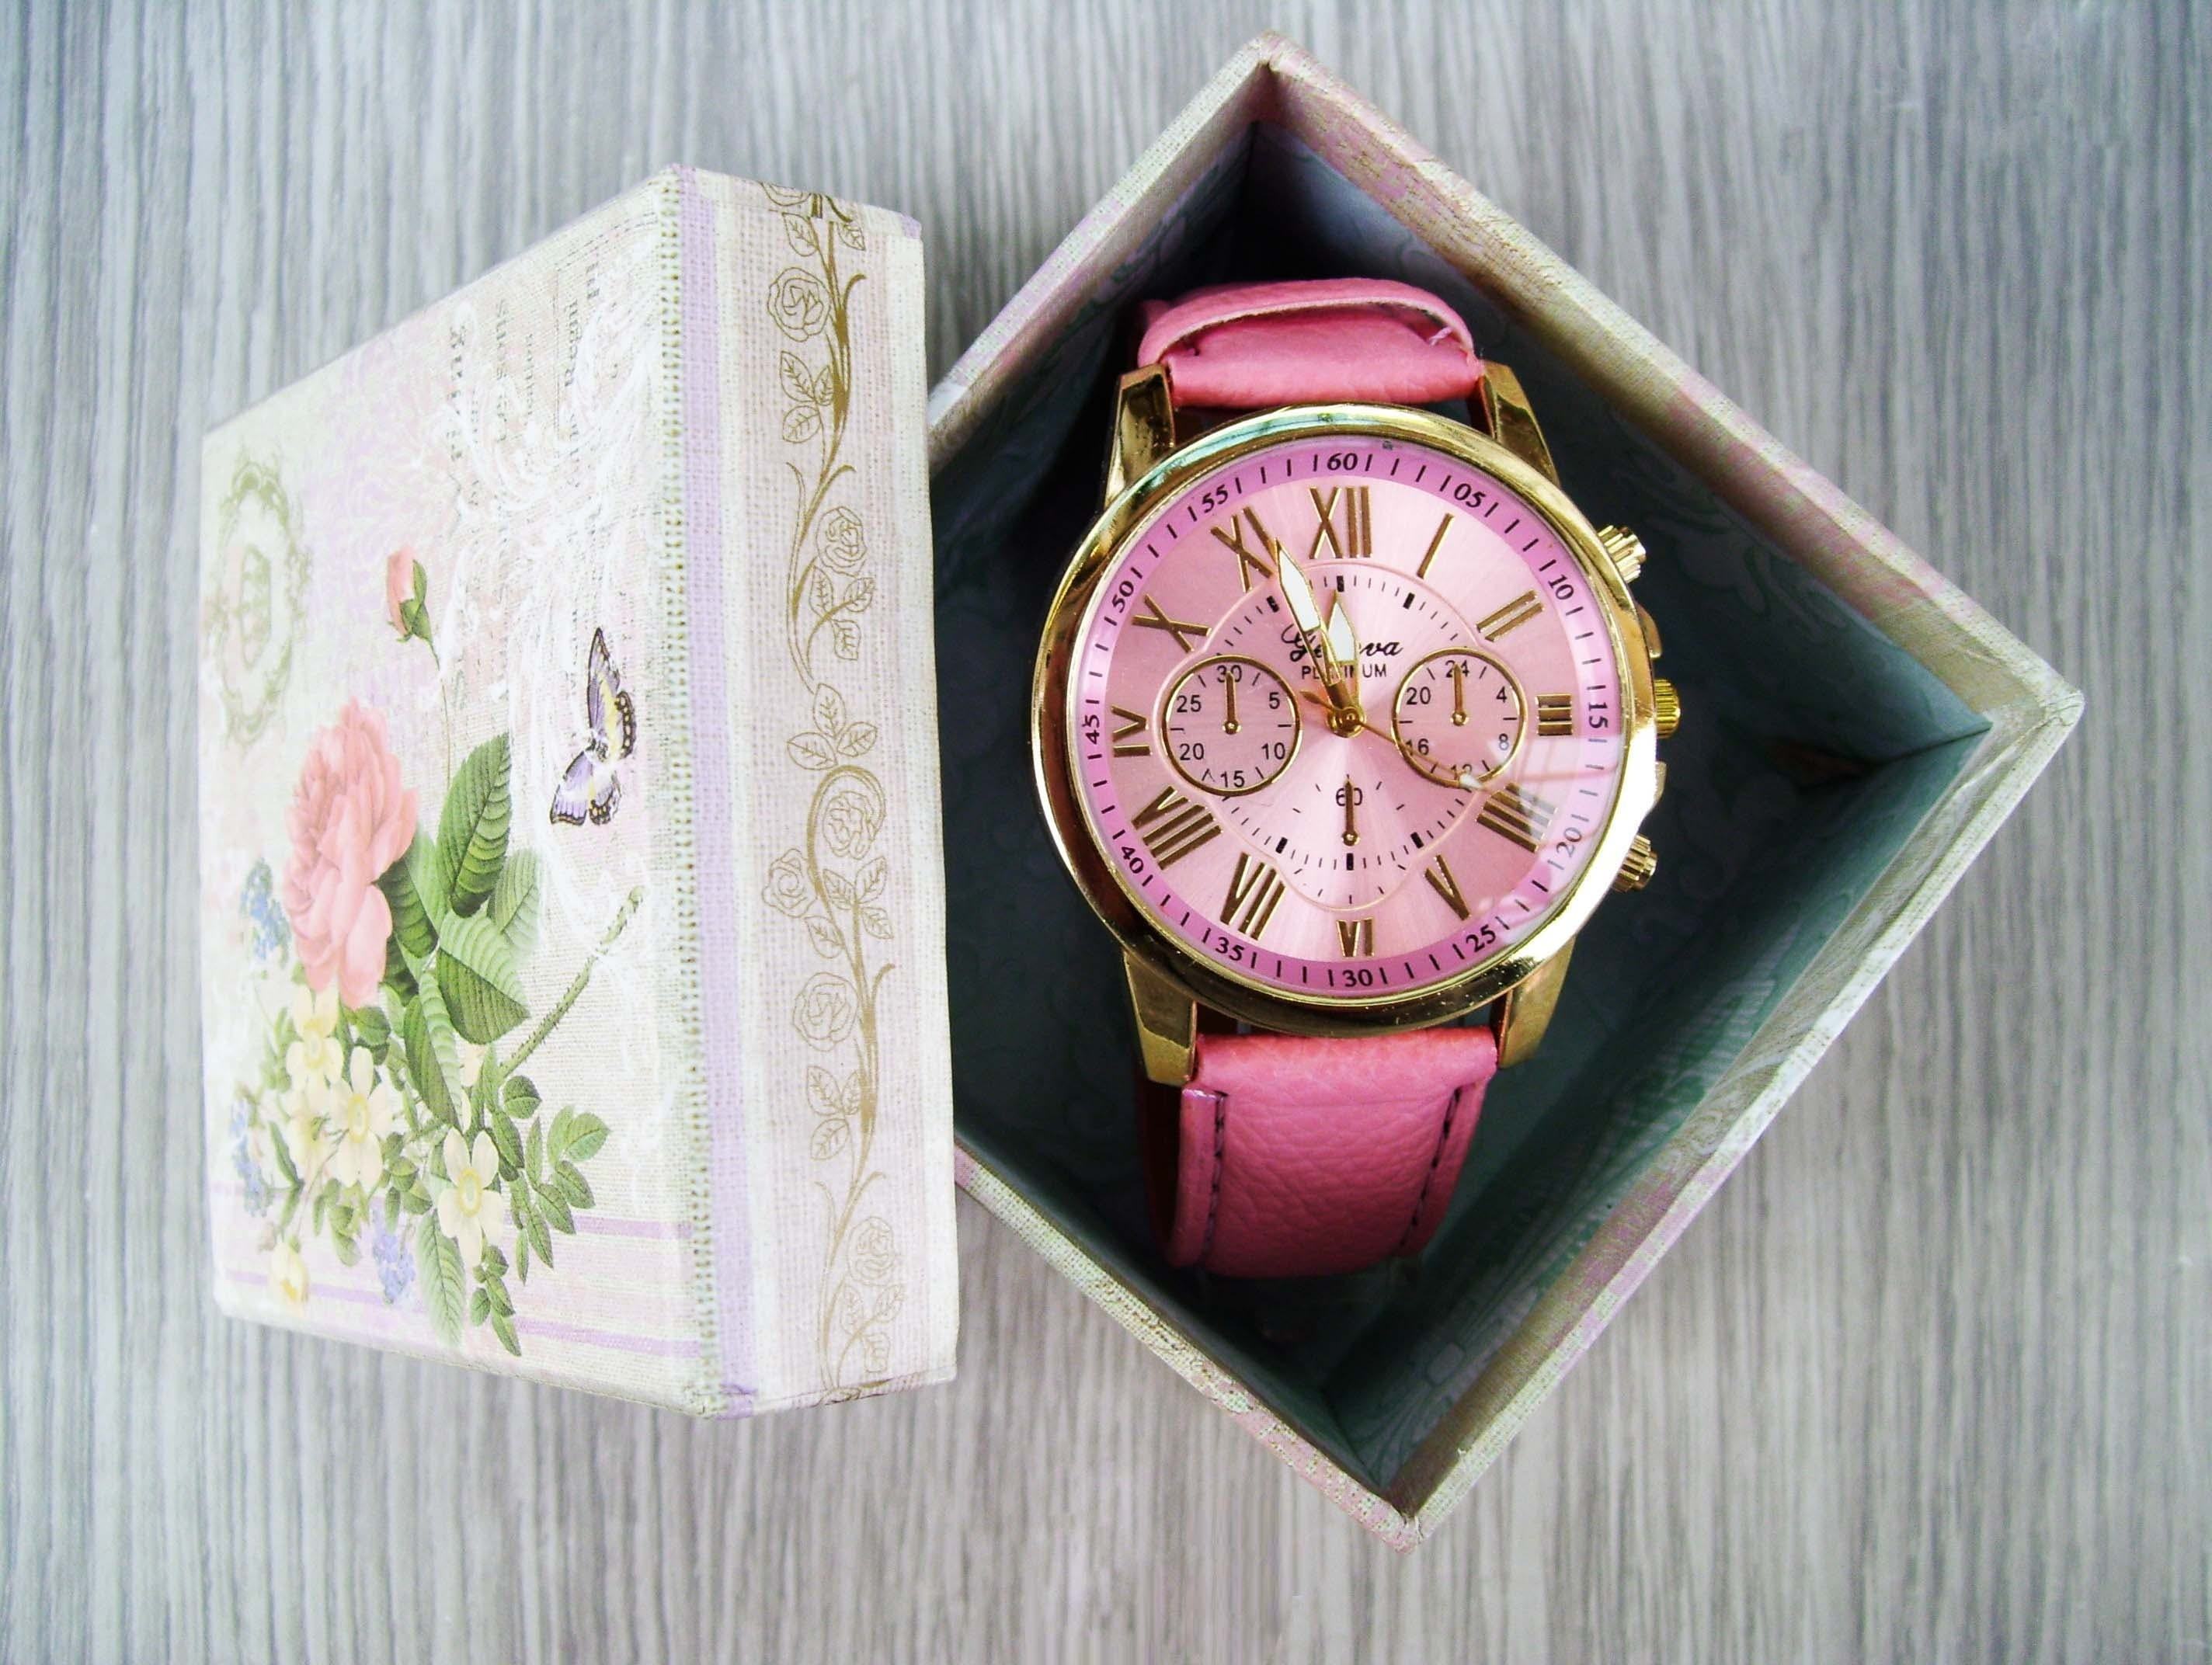 Gold-colored Watch in Box